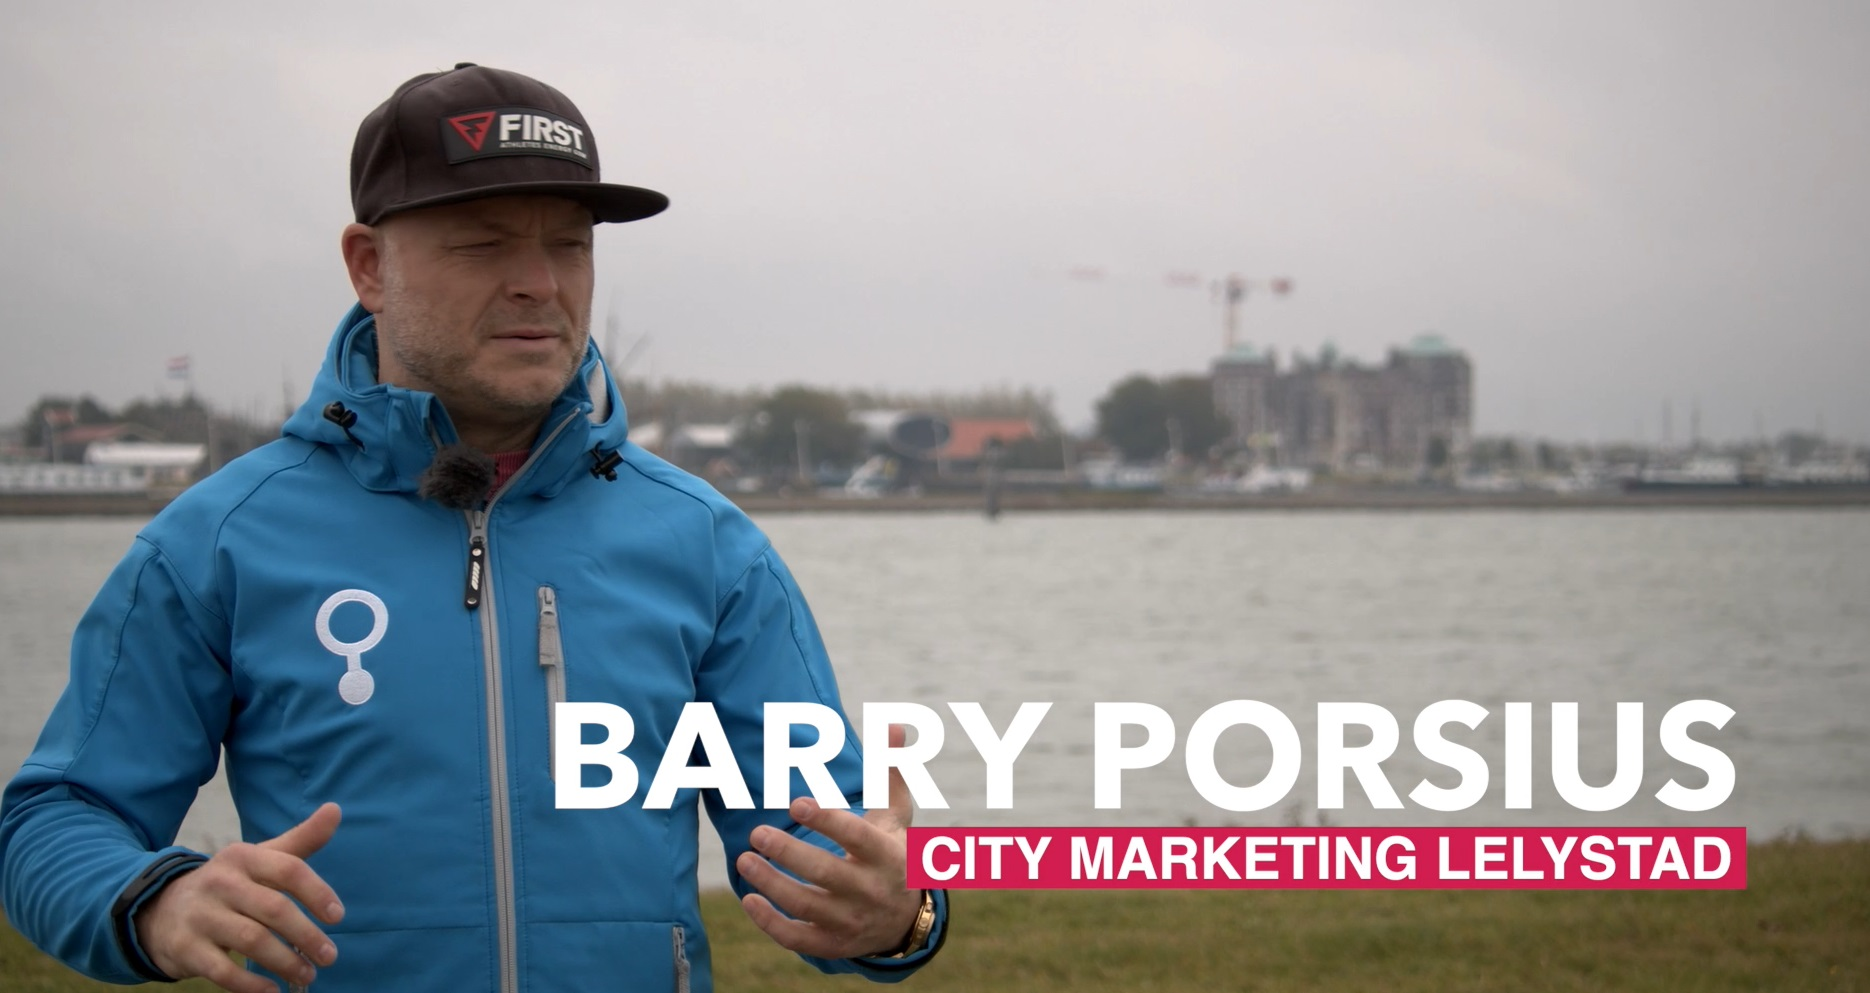 Barry Porsius over het Surffestival